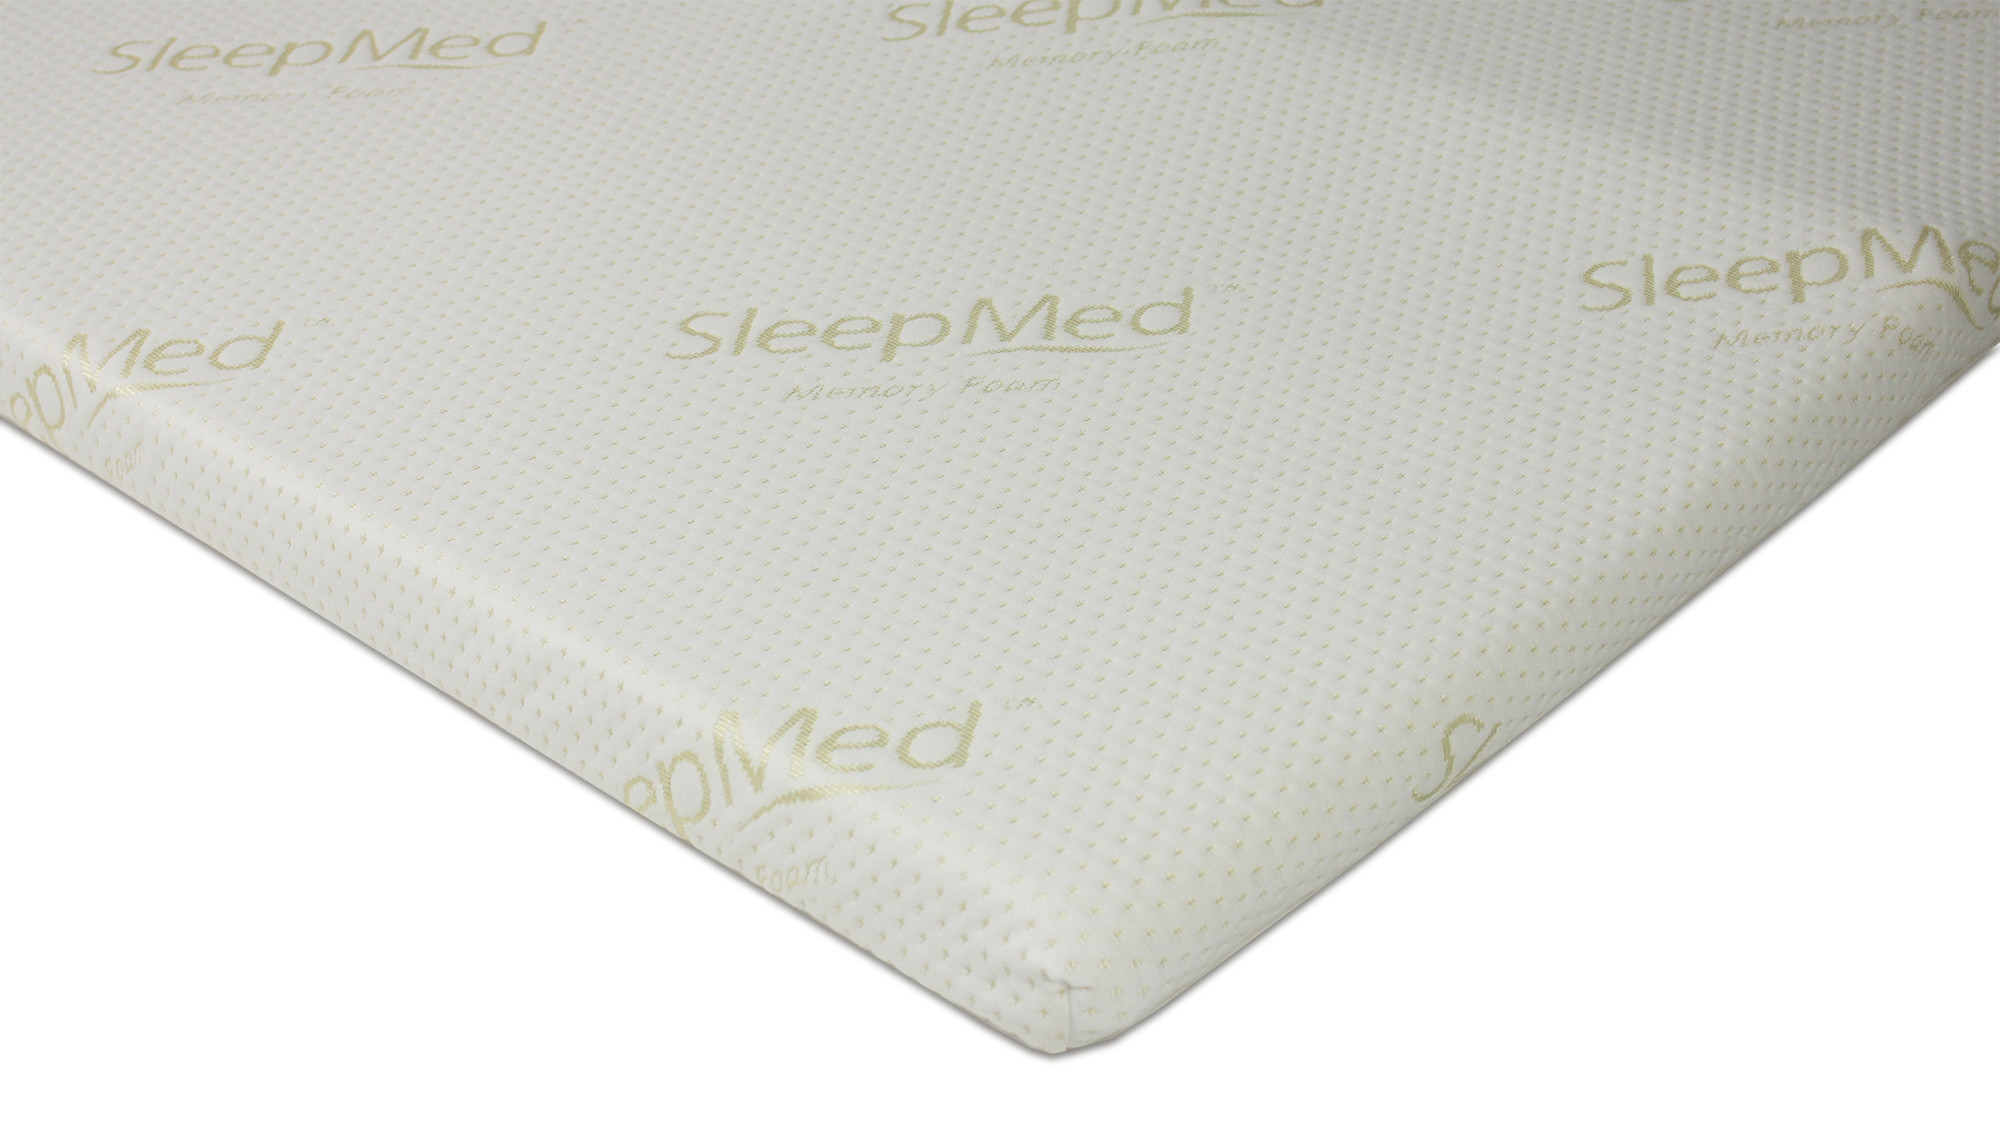 sleepmed memory foam topper (queen size) | furniture & home décor